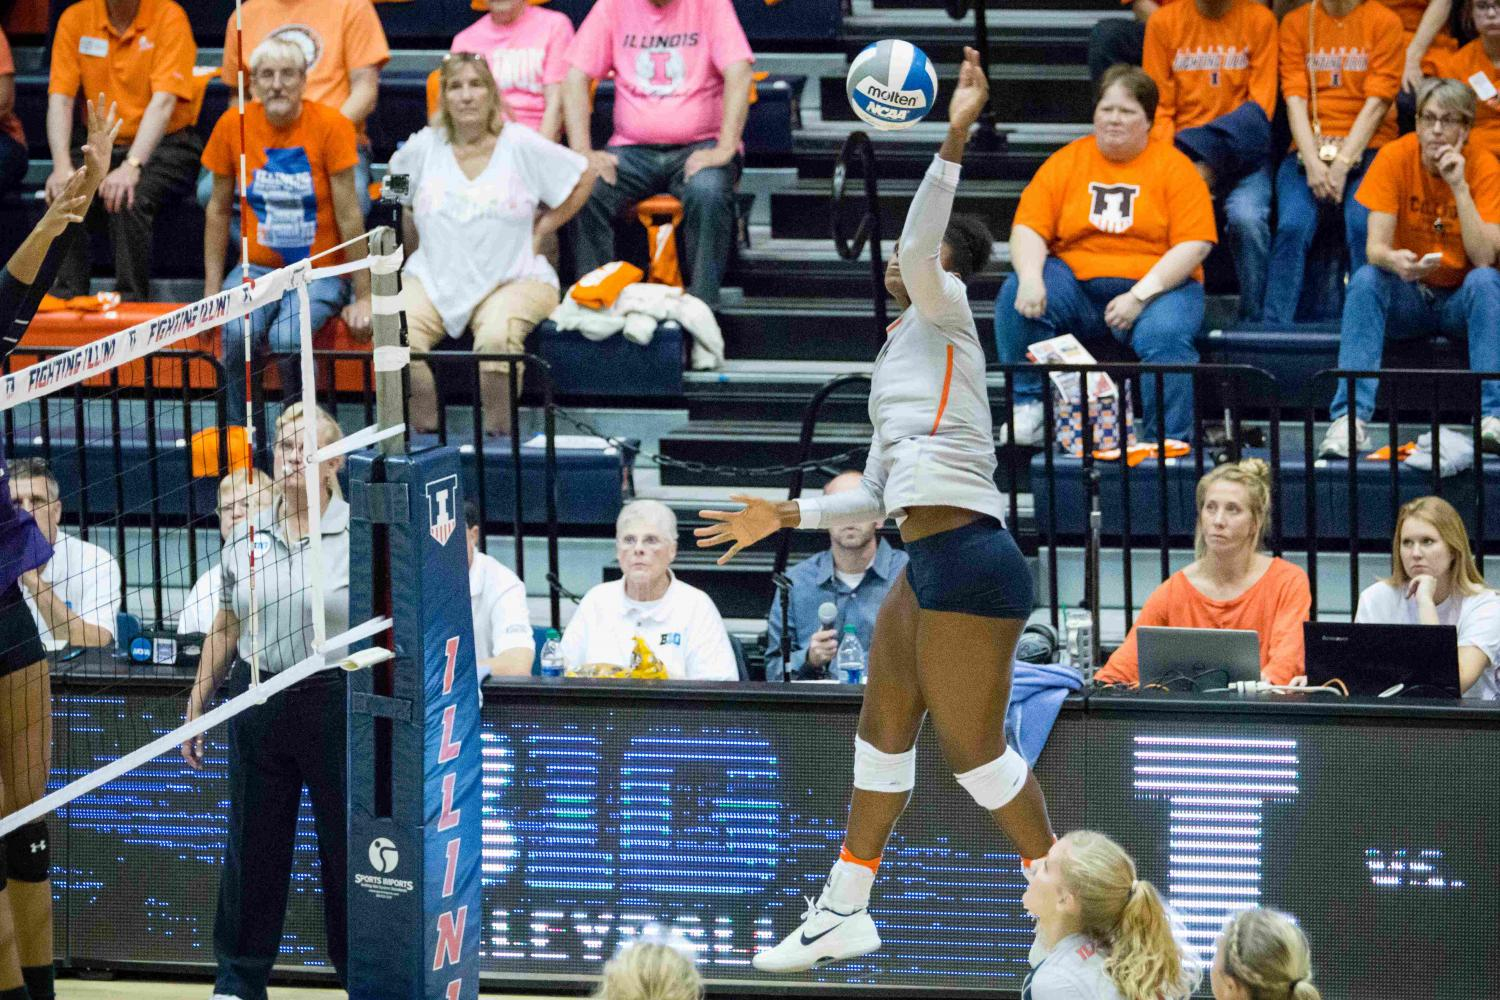 Illinois' Naya Crittenden recorded 235 kills in the 2016 regular season. Crittenden spent her first two collegiate two seasons at Oregon, where misconduct forced her to transfer.